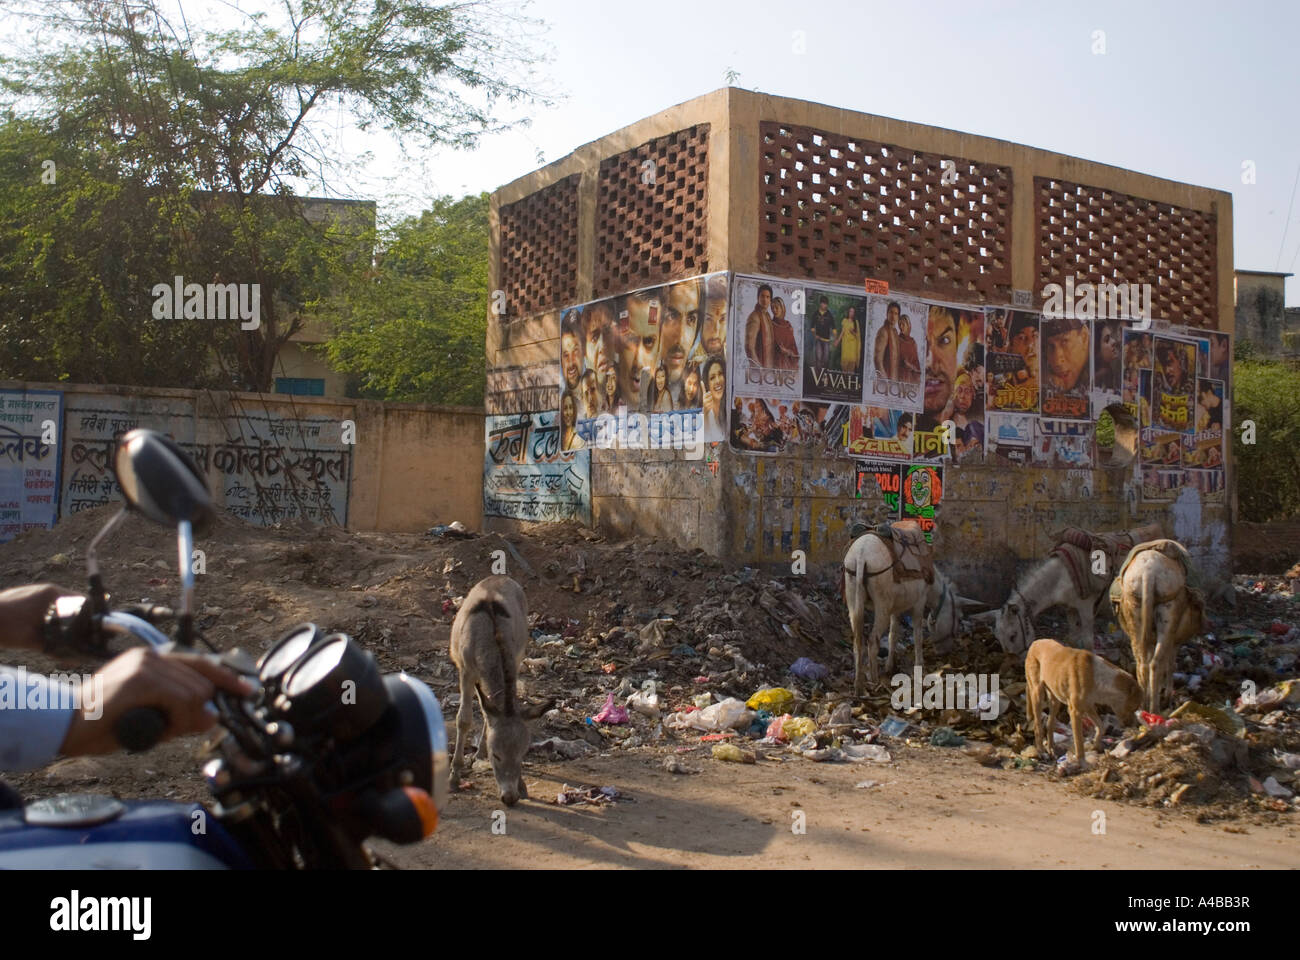 Stock image of donkeys eating garbage on the street in Agra India - Stock Image